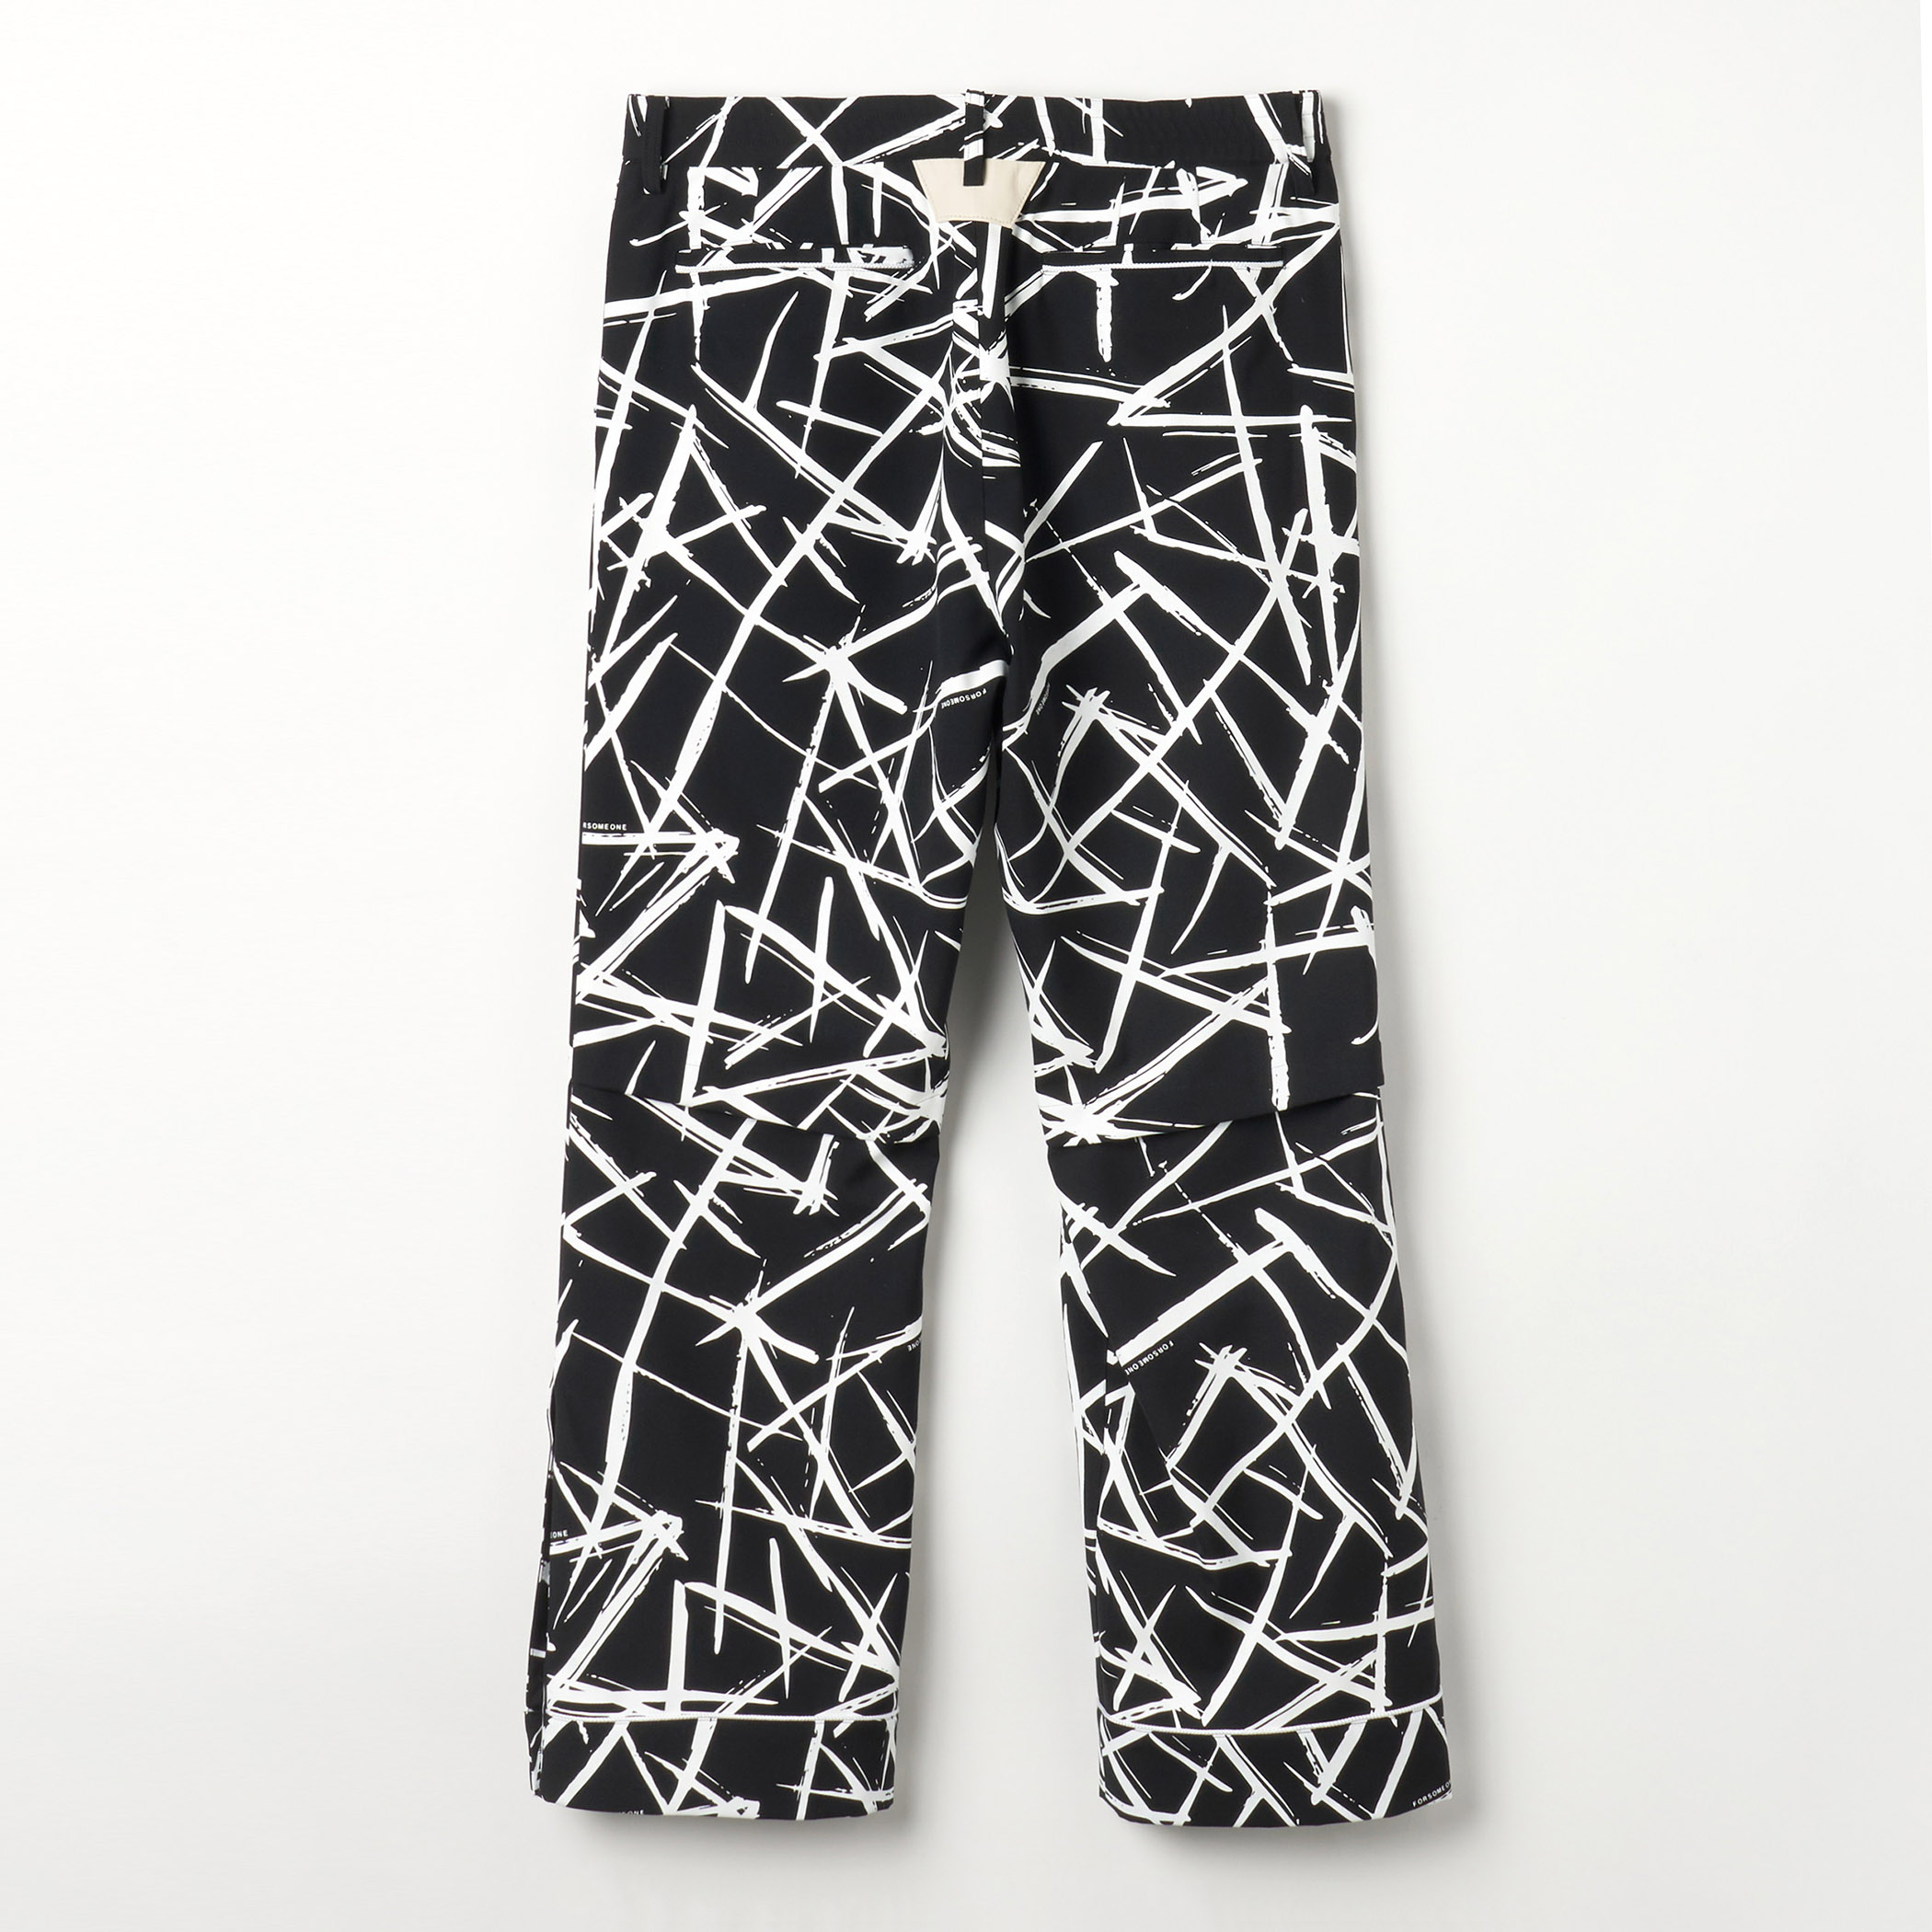 BED TROUSERS MONOTONE